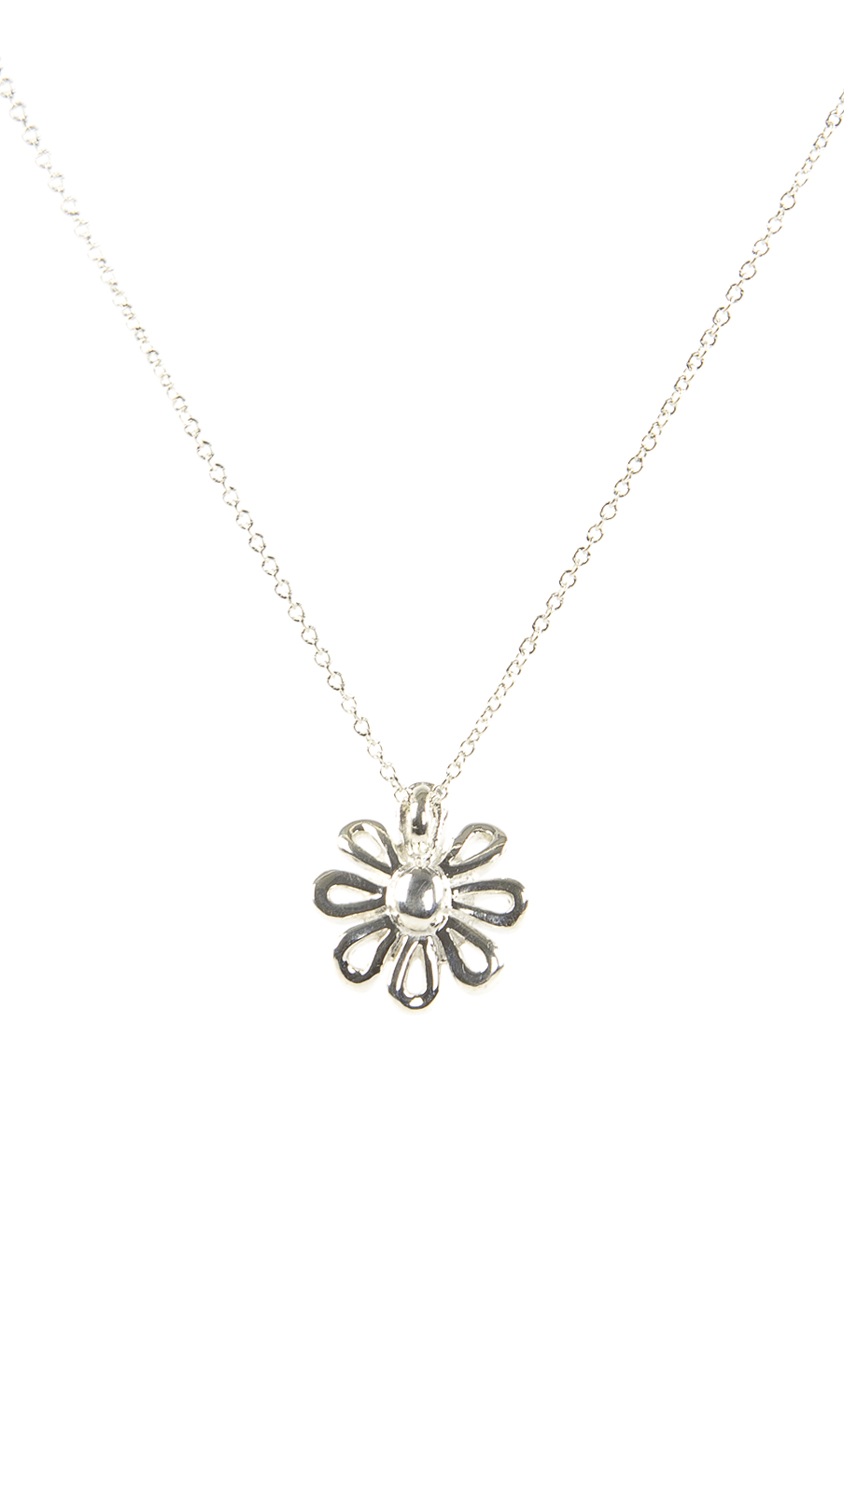 99c4d375d TIFFANY & CO. Women's Paloma Picasso Sterling Silver Daisy Necklace $200 NEW